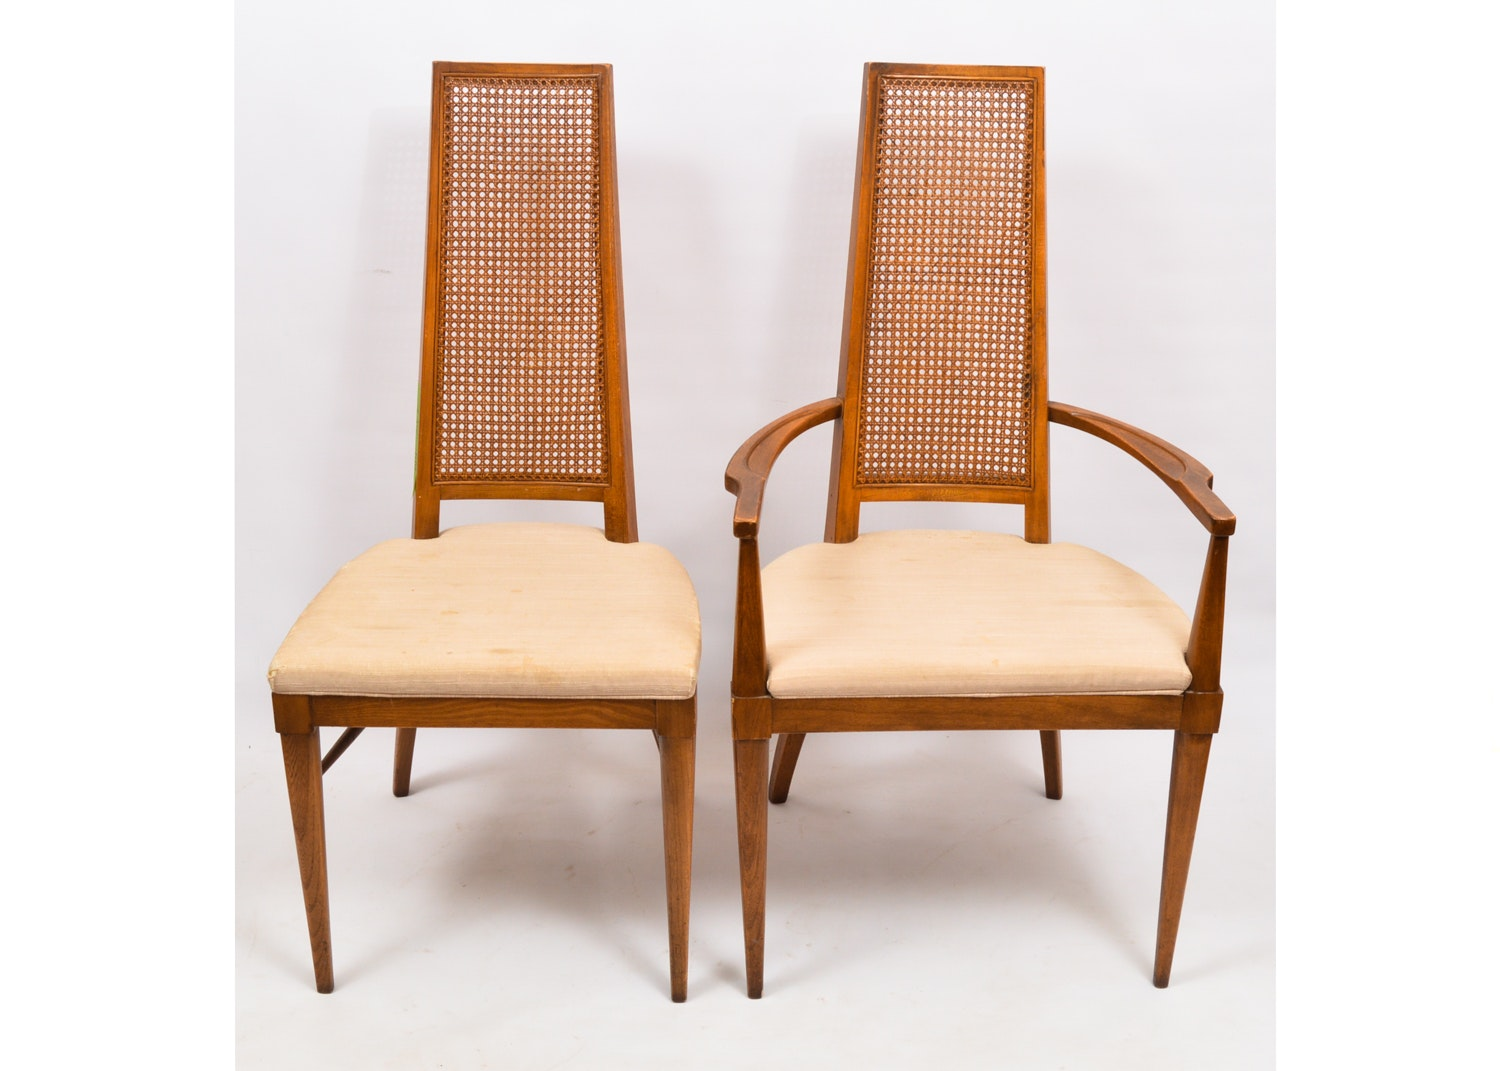 Vintage Cane Back Dining Chairs by Lane Furniture